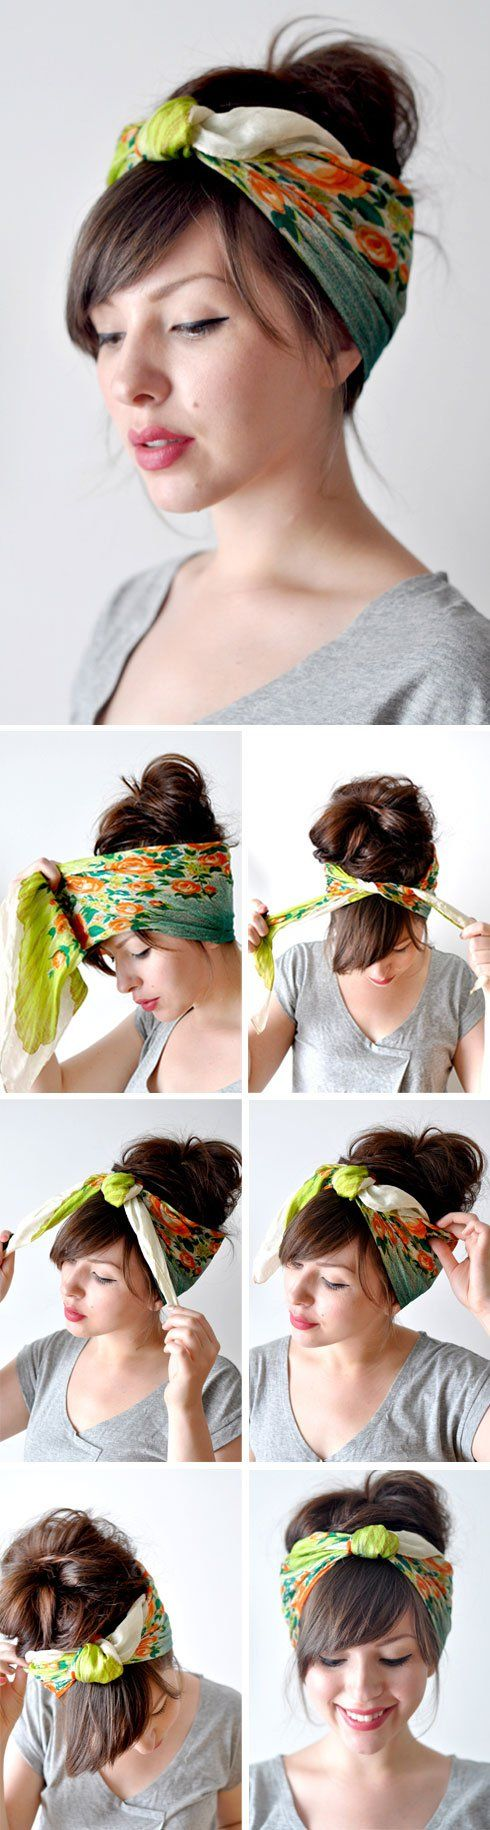 http://naomemandeflores.wordpress.com/2011/08/12/lovely-head-scarf-tutorial/